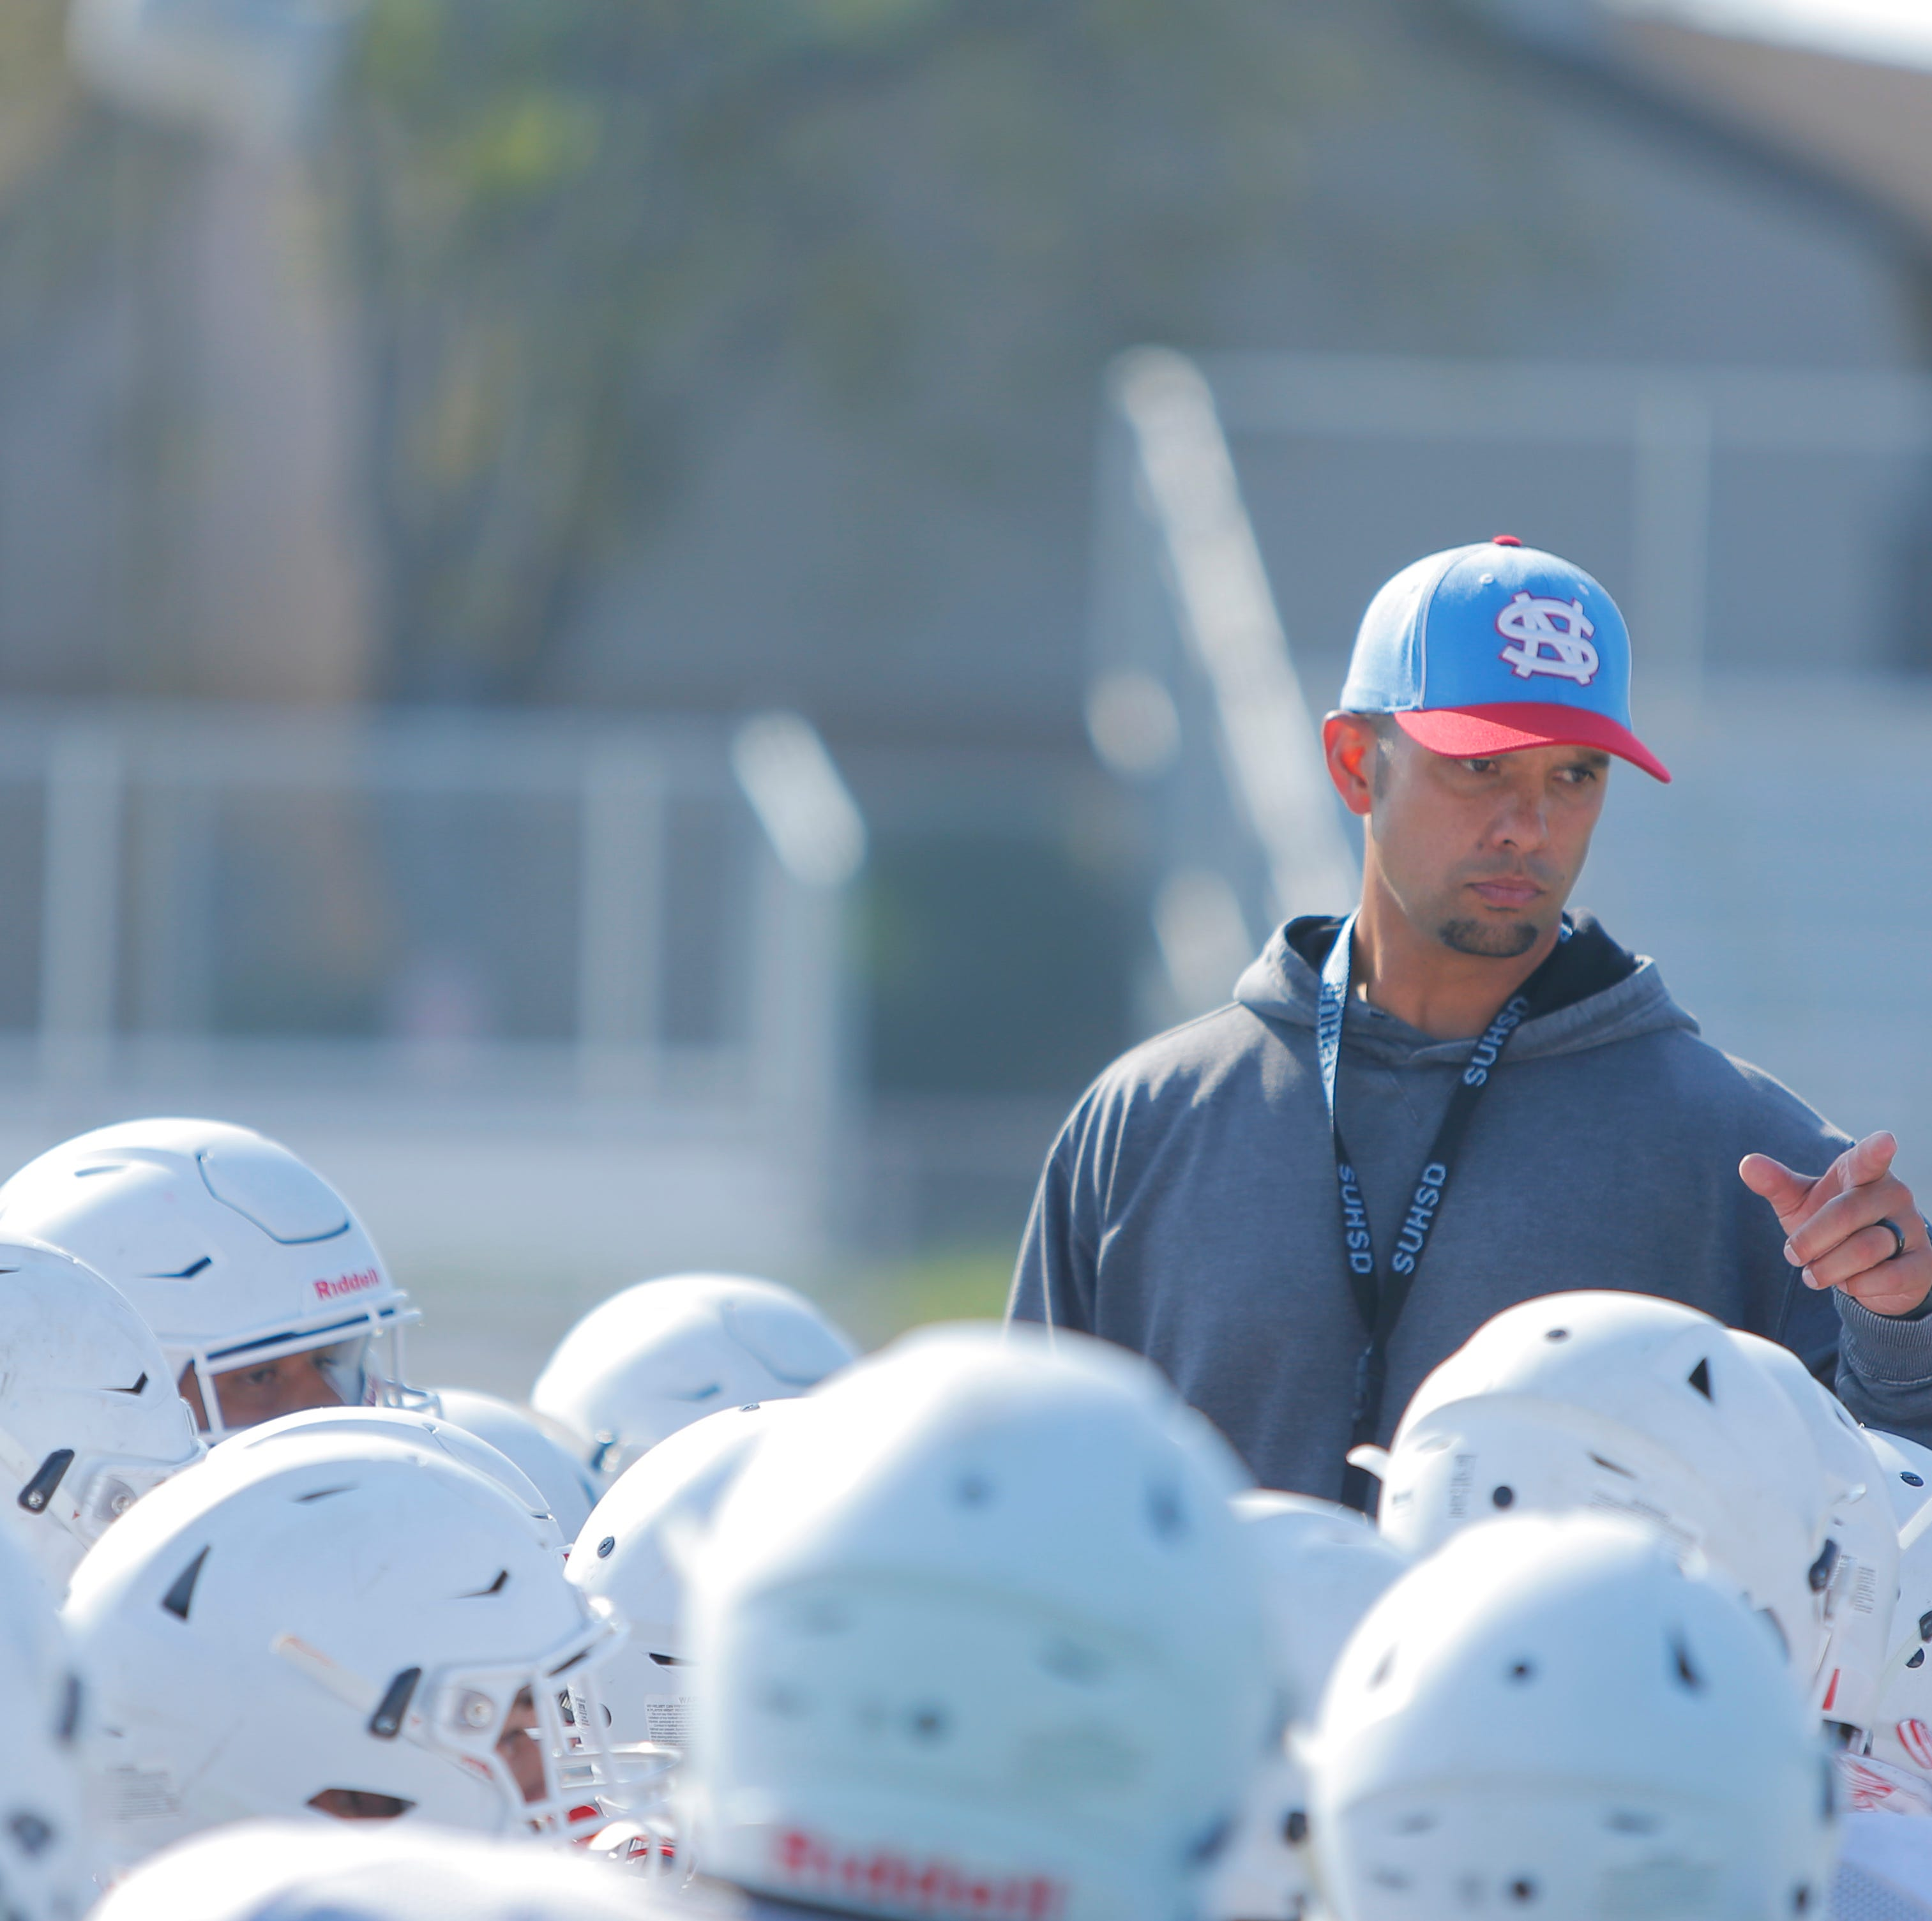 'Fresh start': North Salinas football's promising reset in 2018